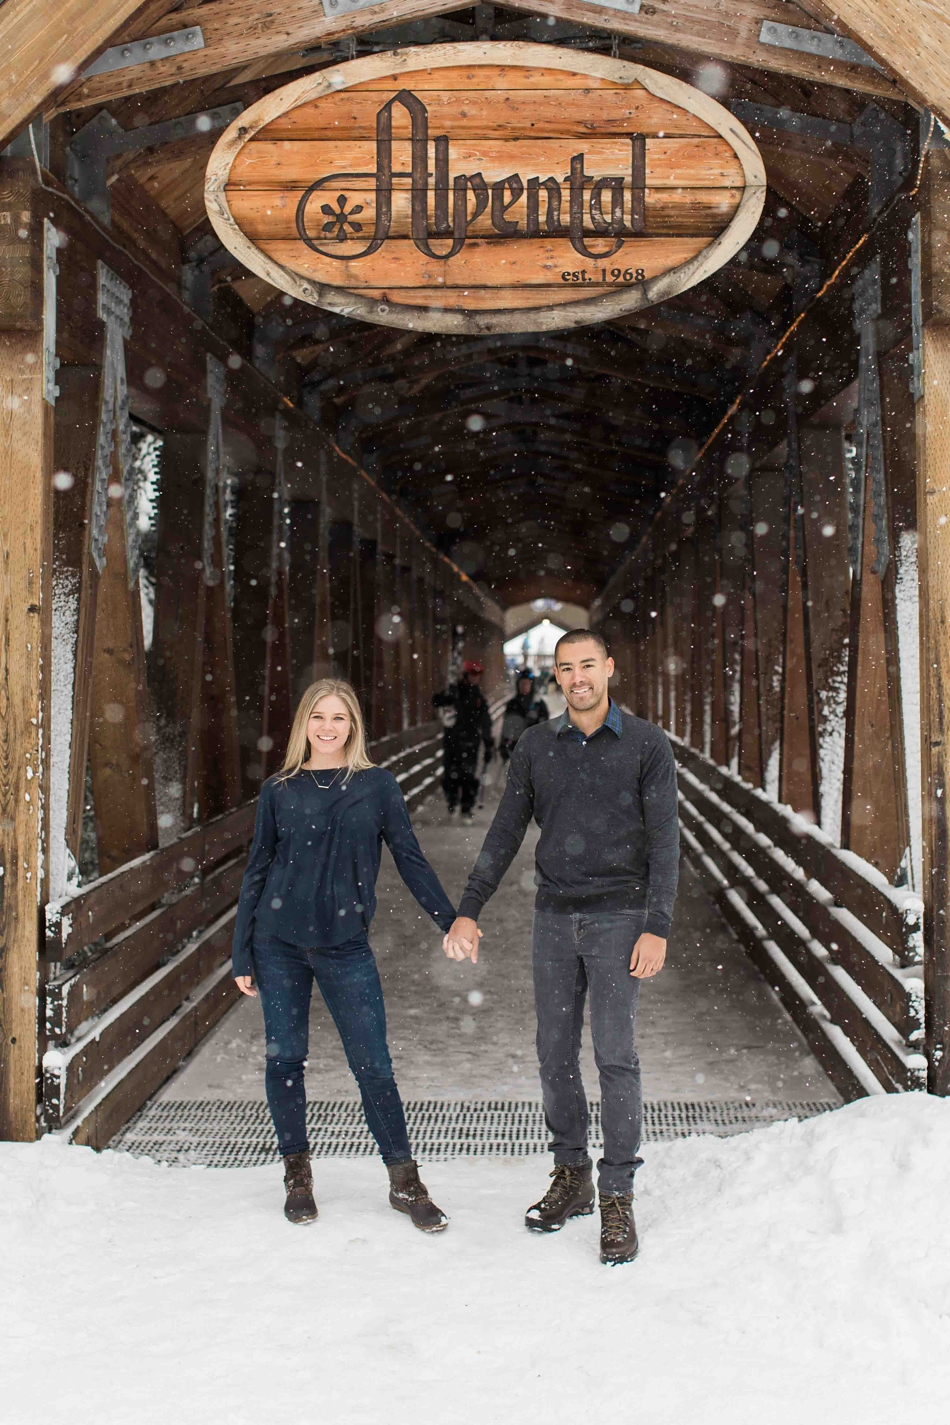 Photo from an outdoor winter snow engagement photo session for a wedding at Twin Willows in Snohomish, a wedding venue near Seattle, WA. | Joanna Monger Photography | Snohomish Wedding Photographer